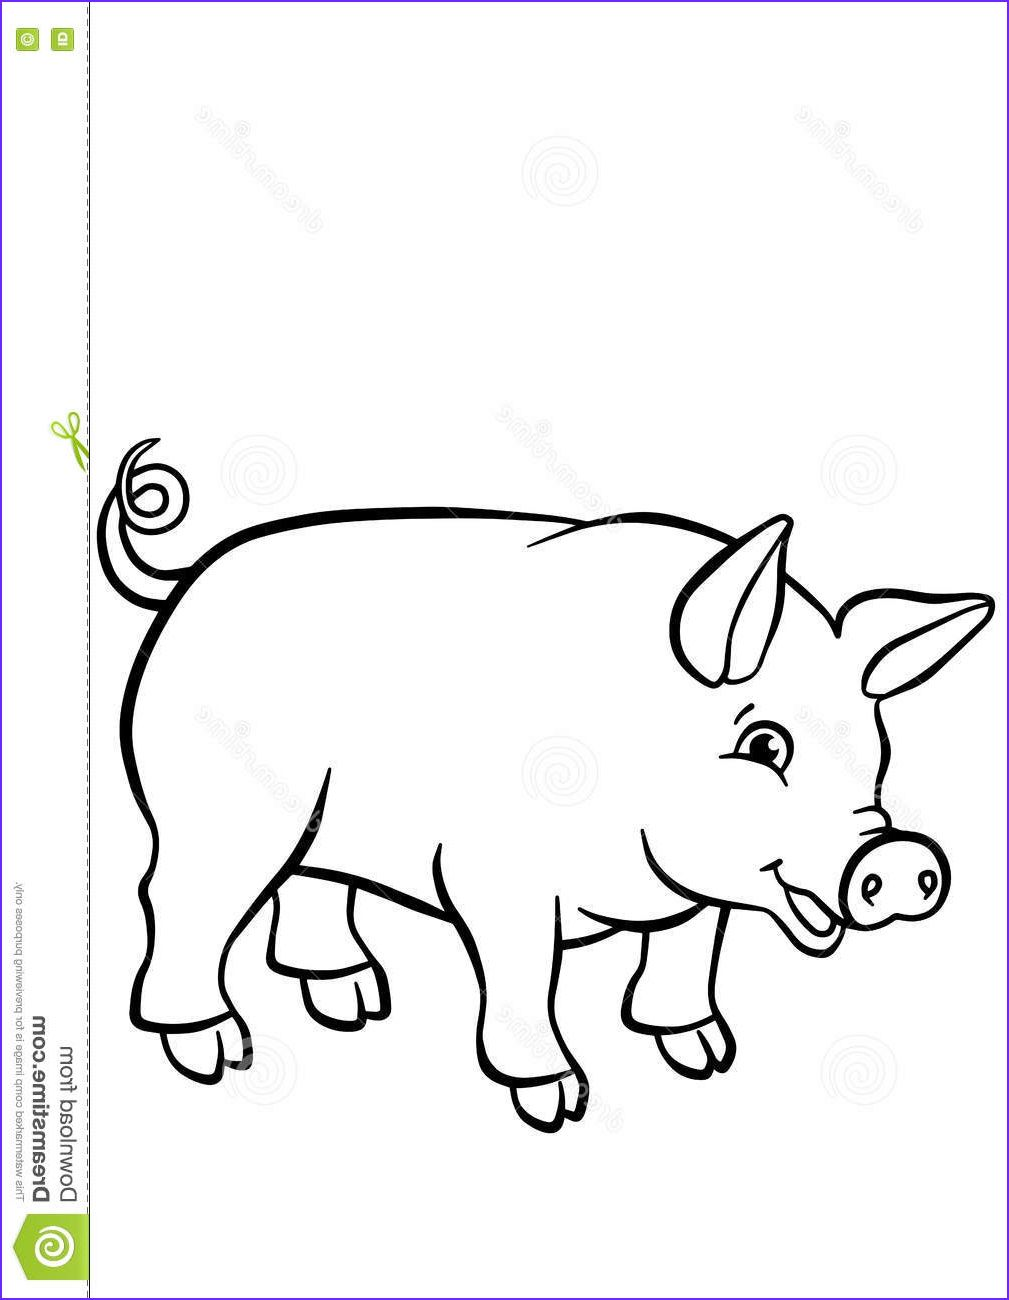 9 Inspirational Cute Pig Coloring Pages Images In 2020 Cute Pigs